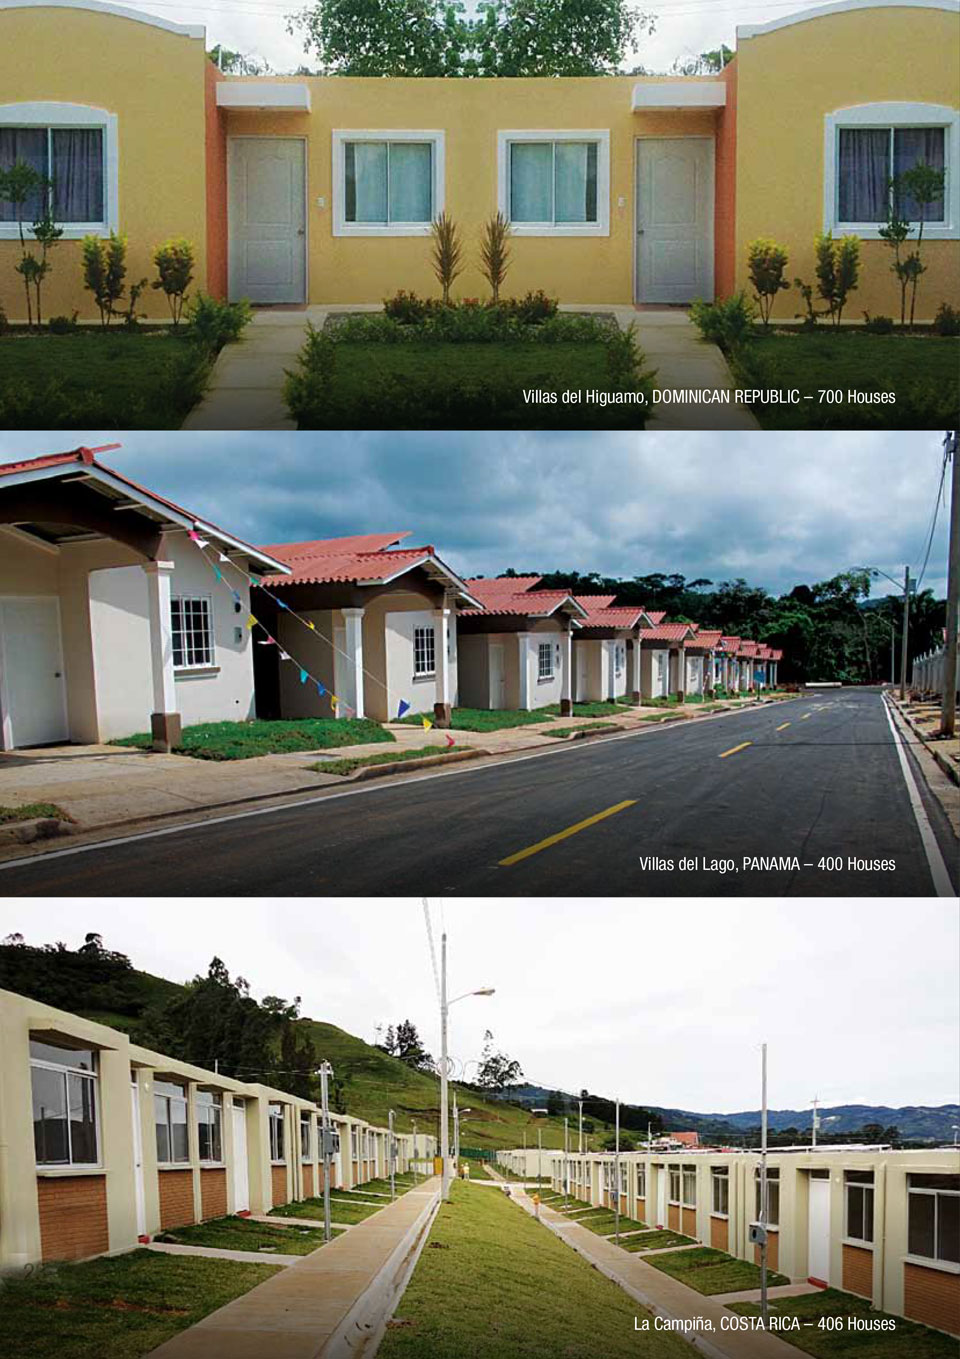 An image showing some of the projects CEMEX has done with the Affordable Housing solution.